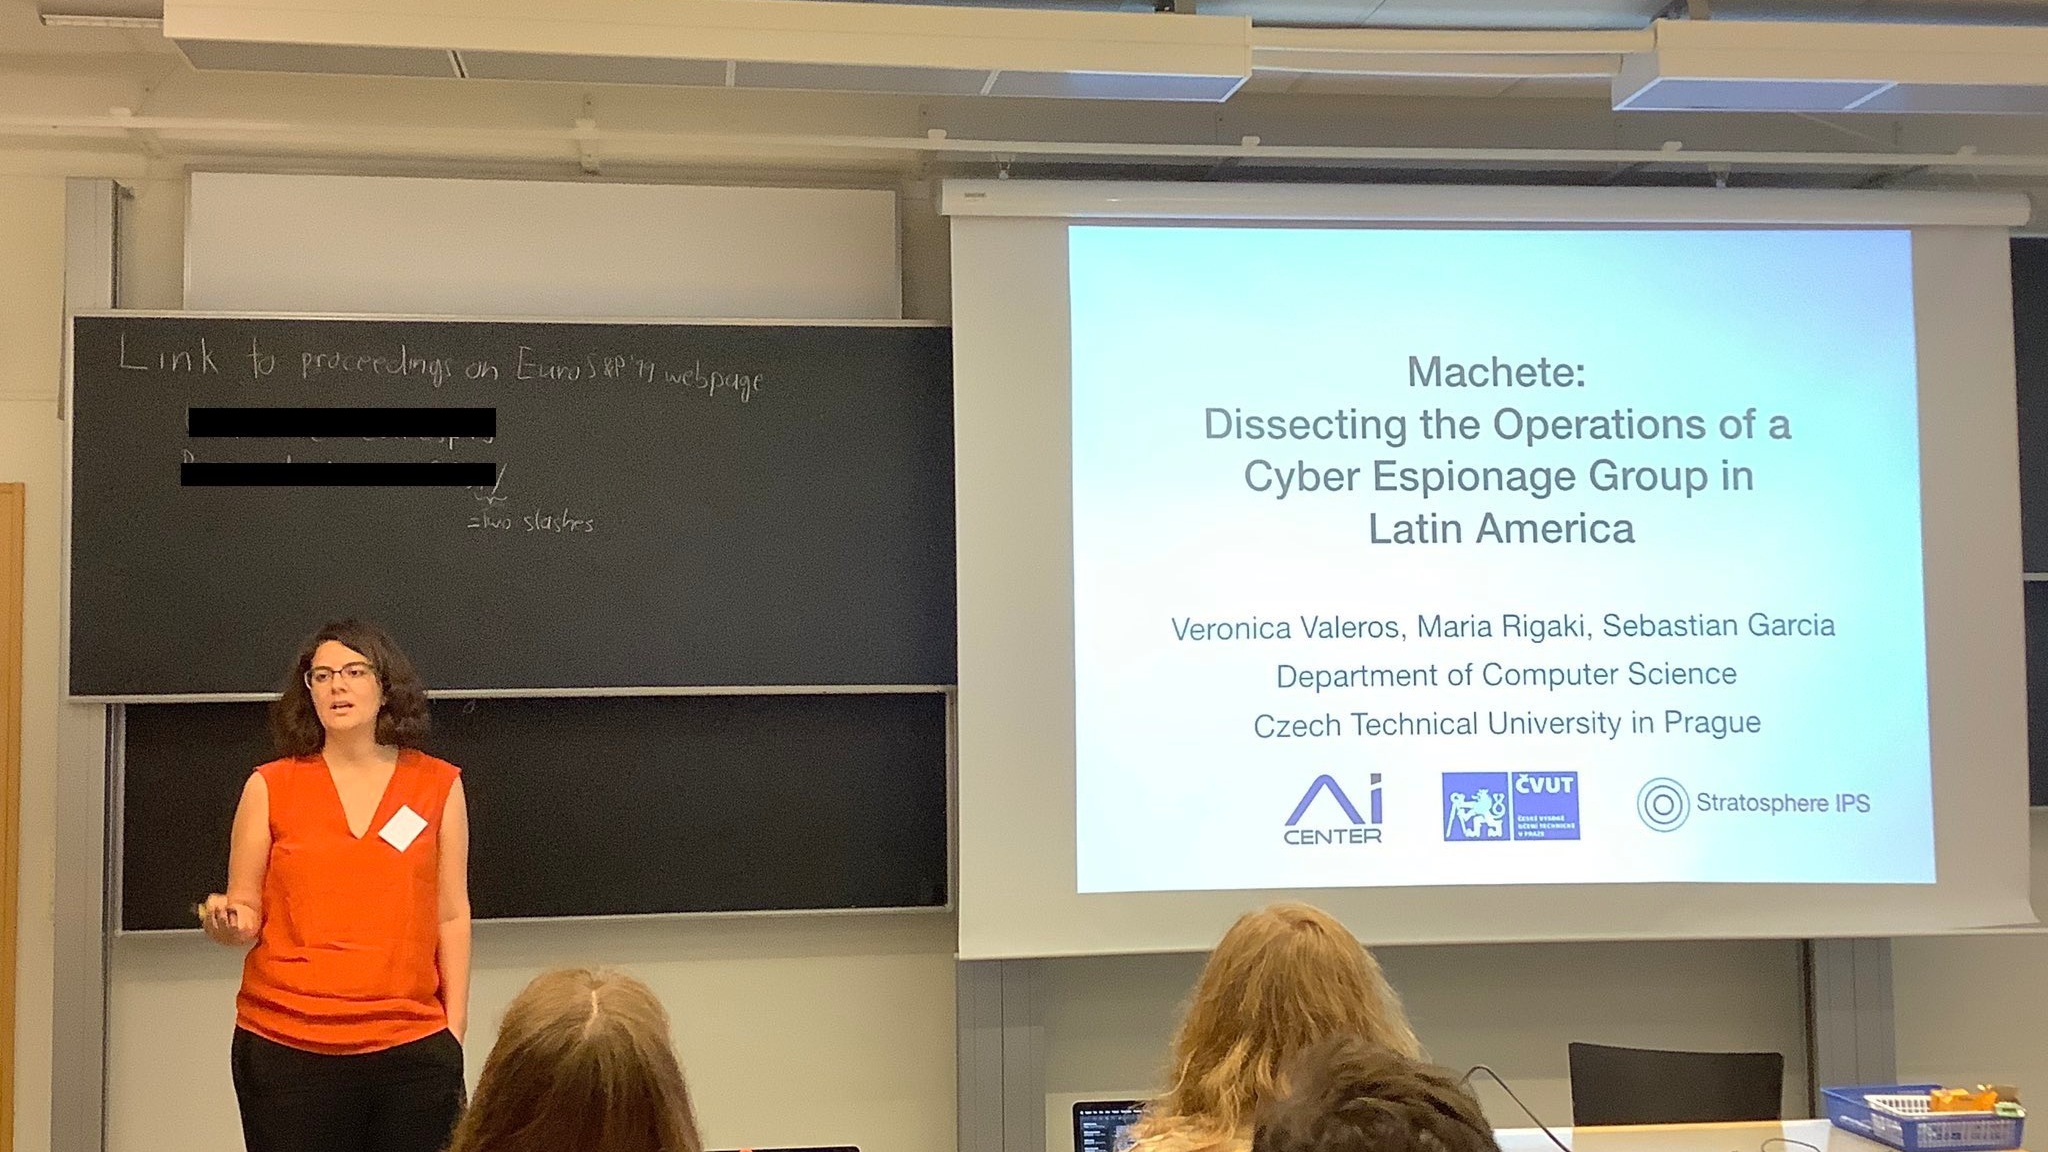 """Veronica Valeros presenting the paper  """"Machete: Dissecting the Operations of a Cyber Espionage Group in Latin America""""."""